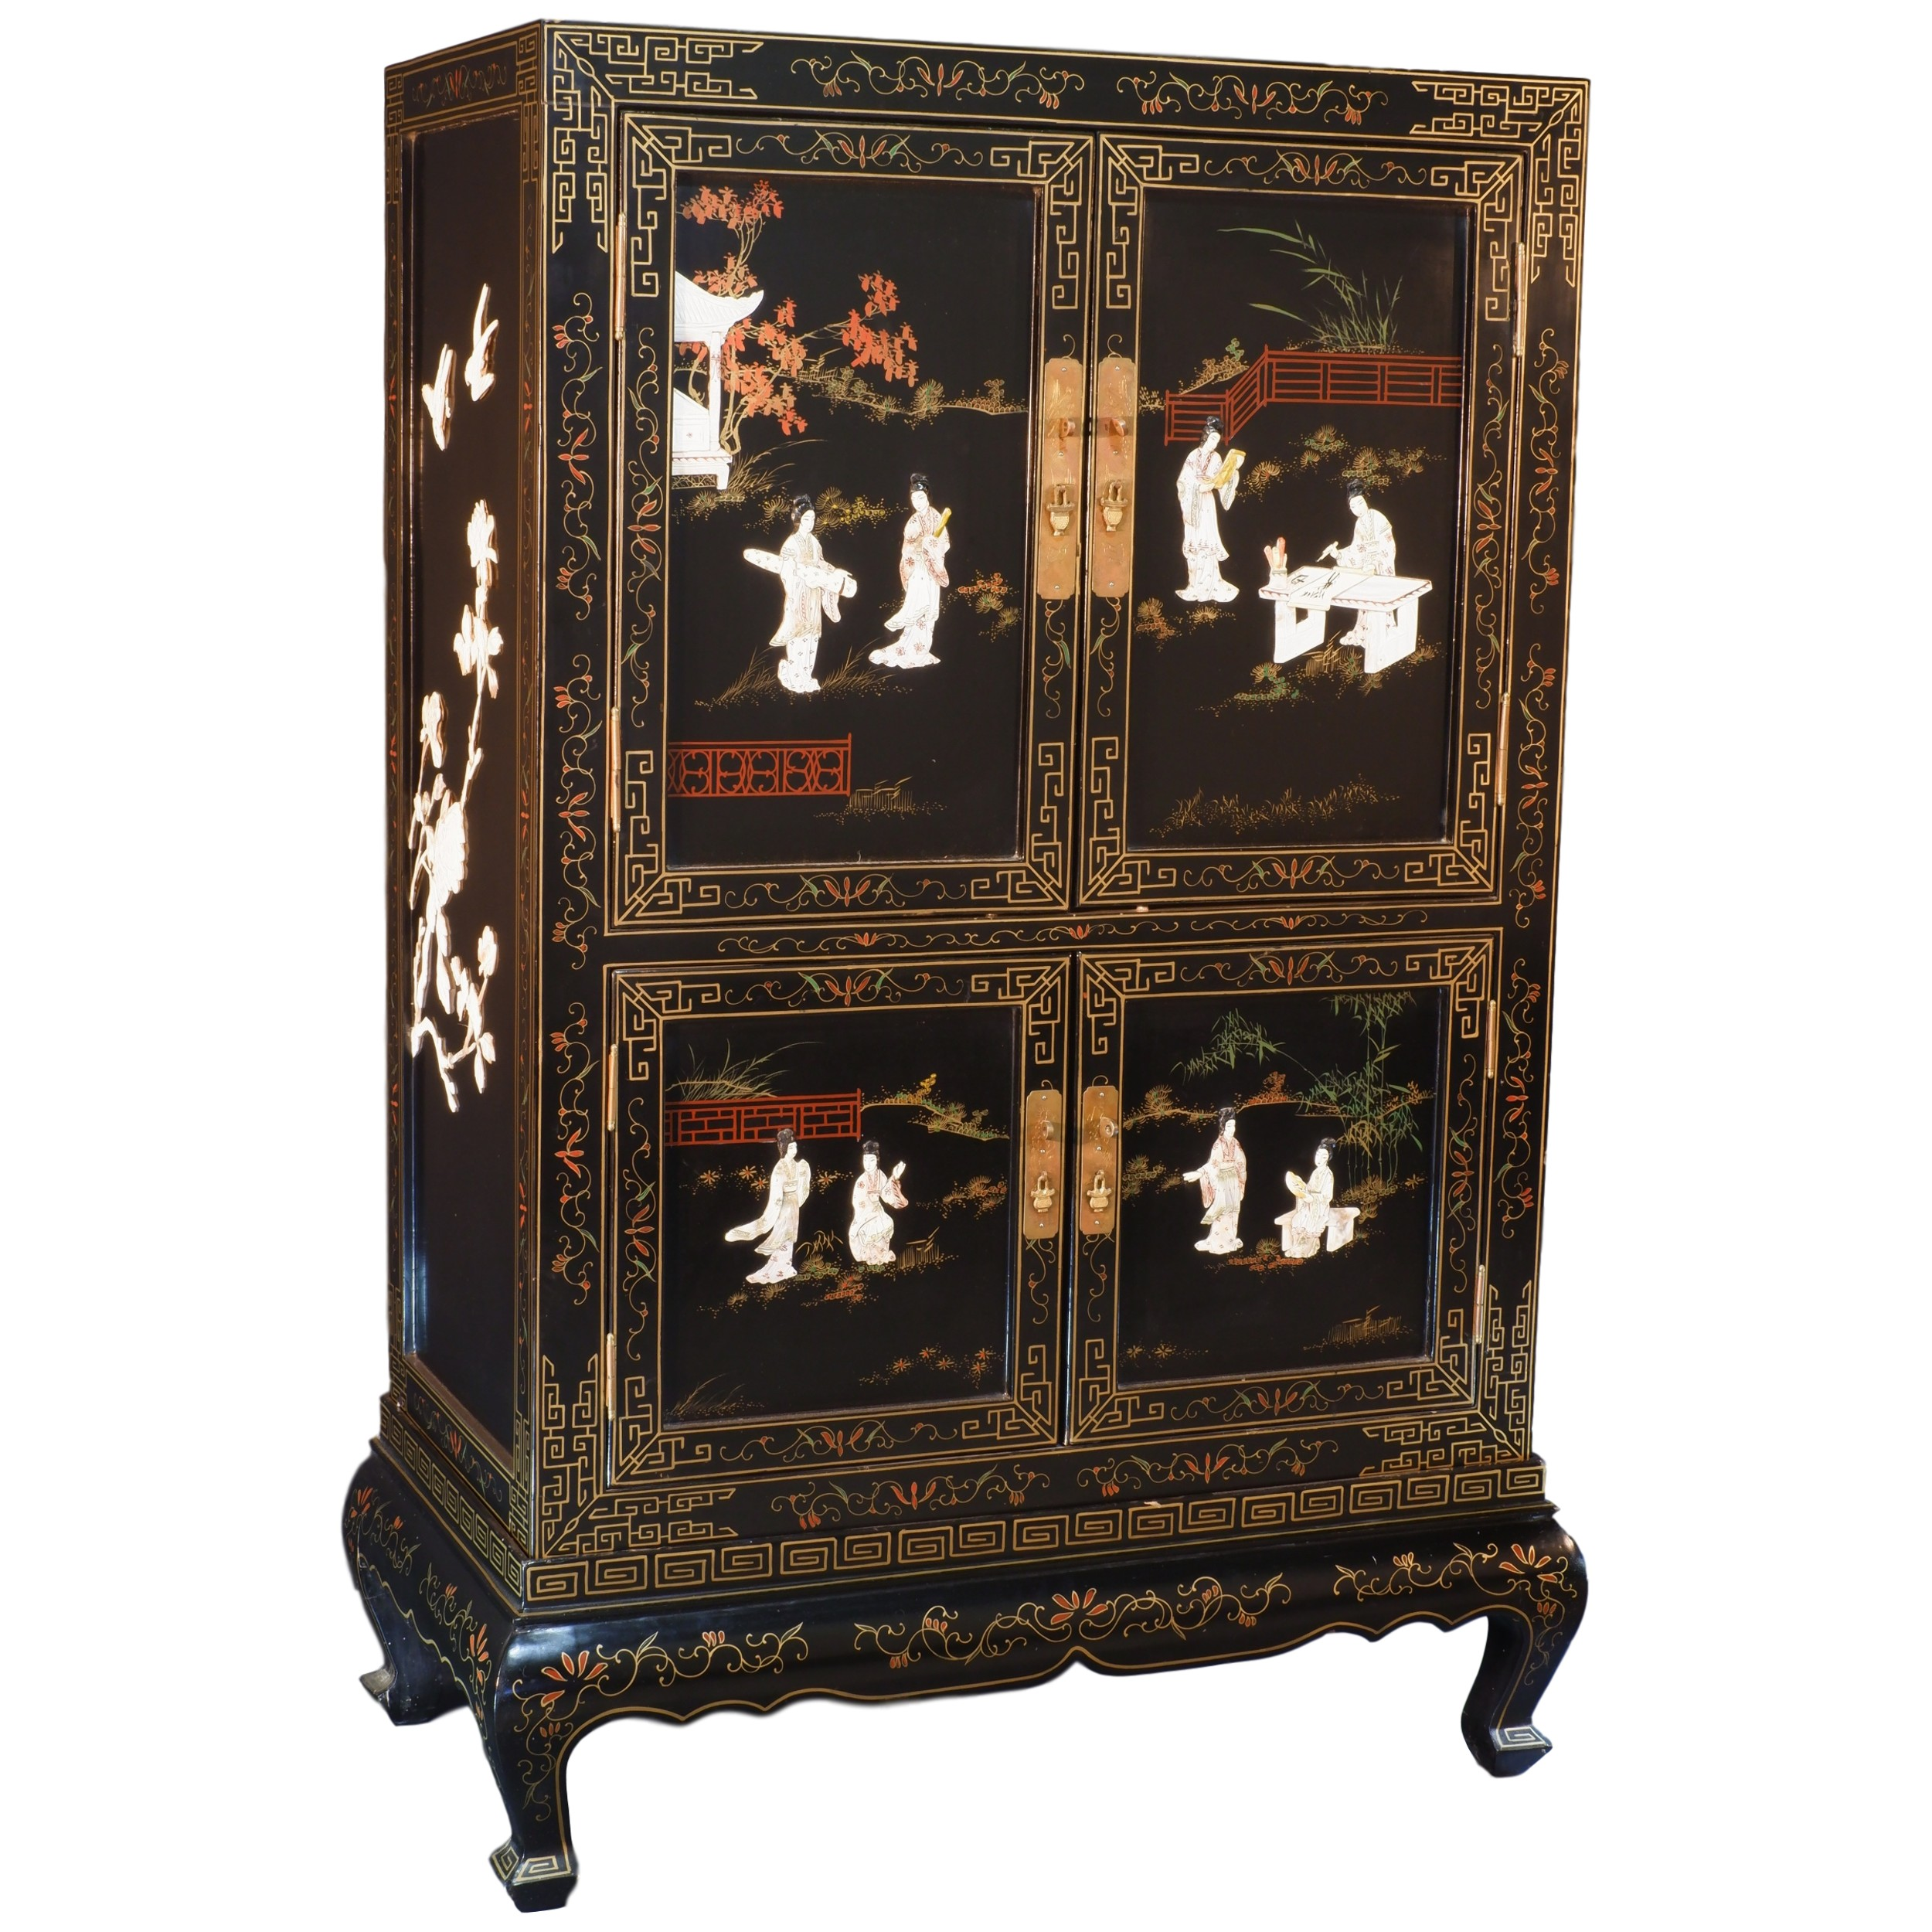 'Chinese Black Lacquer Cabinet with Carved Shell and Bone Embellishment 20th Century'